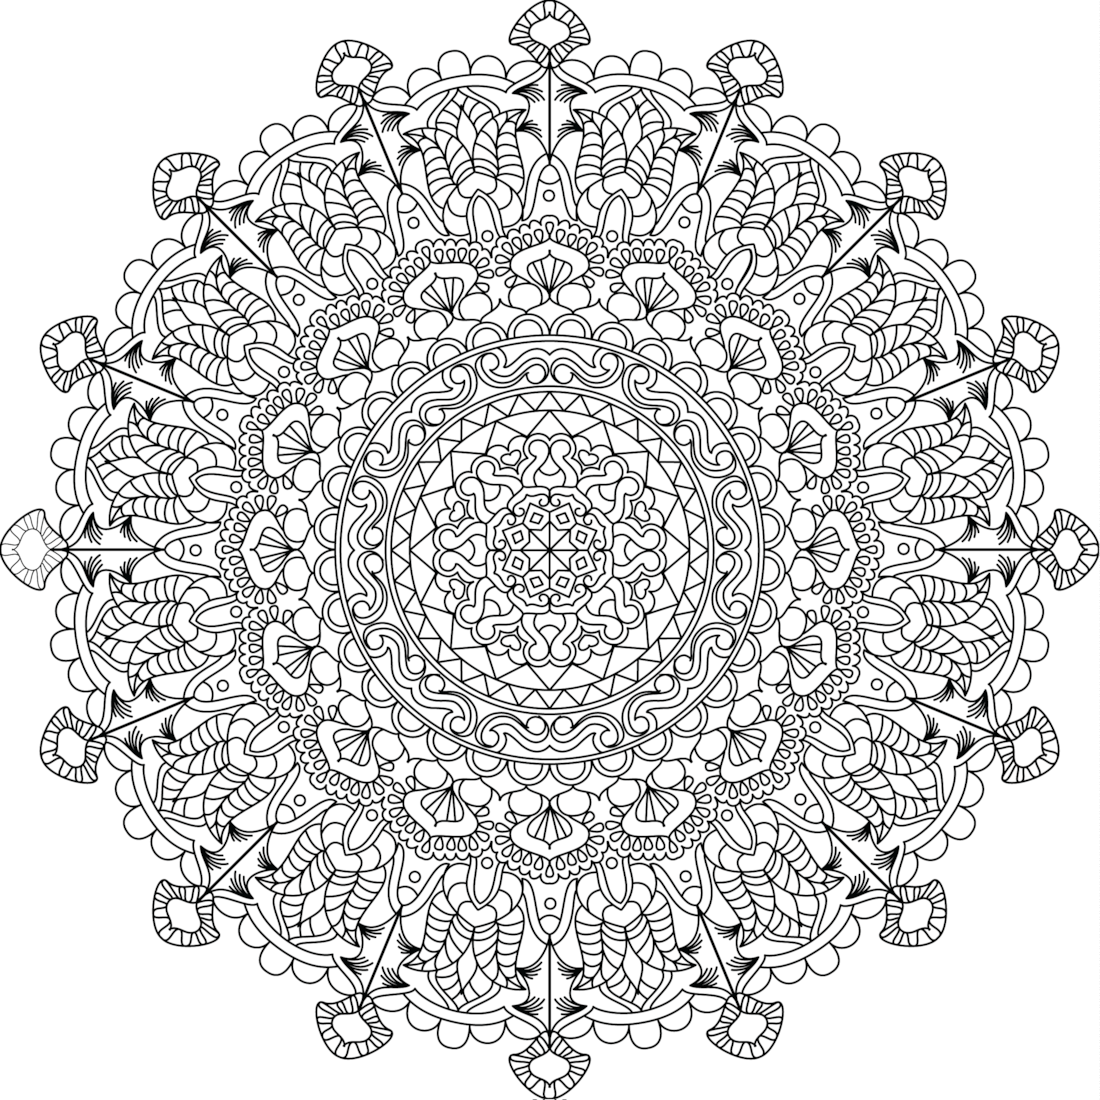 pin by monday mandala on printable mandalas to color free heart coloring pages free. Black Bedroom Furniture Sets. Home Design Ideas